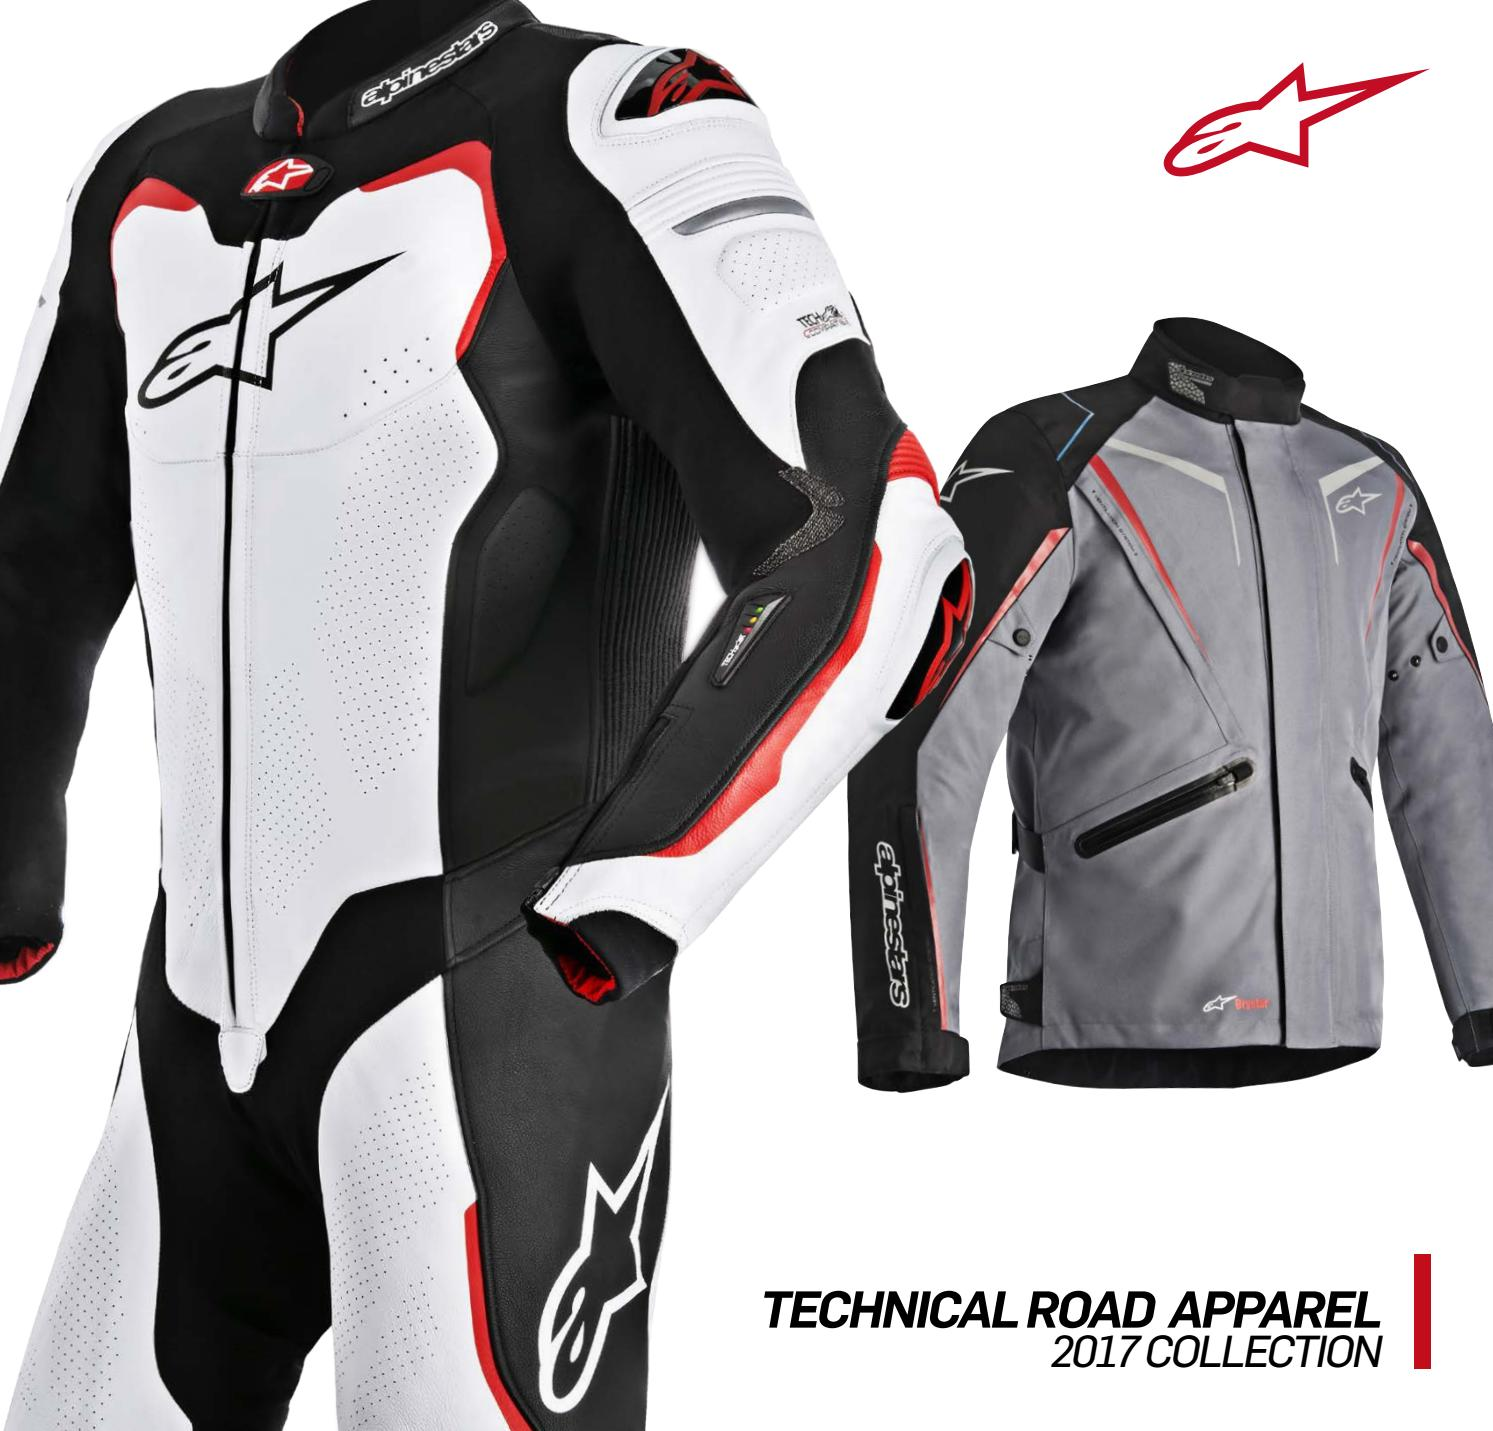 374c09b22 2017 Alpinestars Technical Road Apparel Catalogue by Monza Imports ...